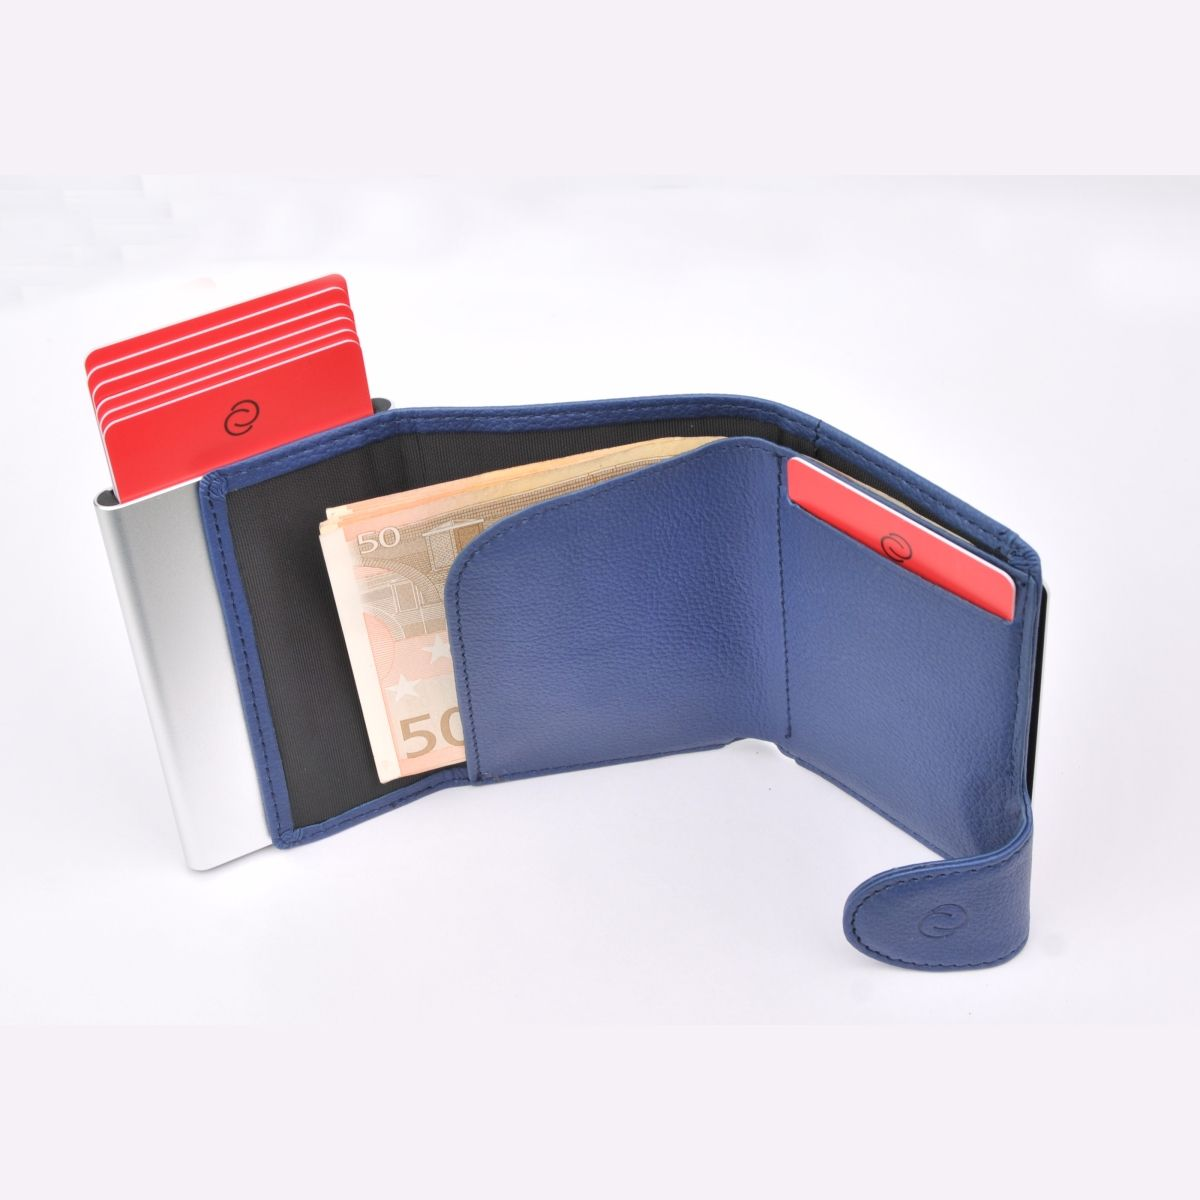 C-Secure Aluminum Card Holder with Genuine Leather and Coin Pouch - Blue Marino